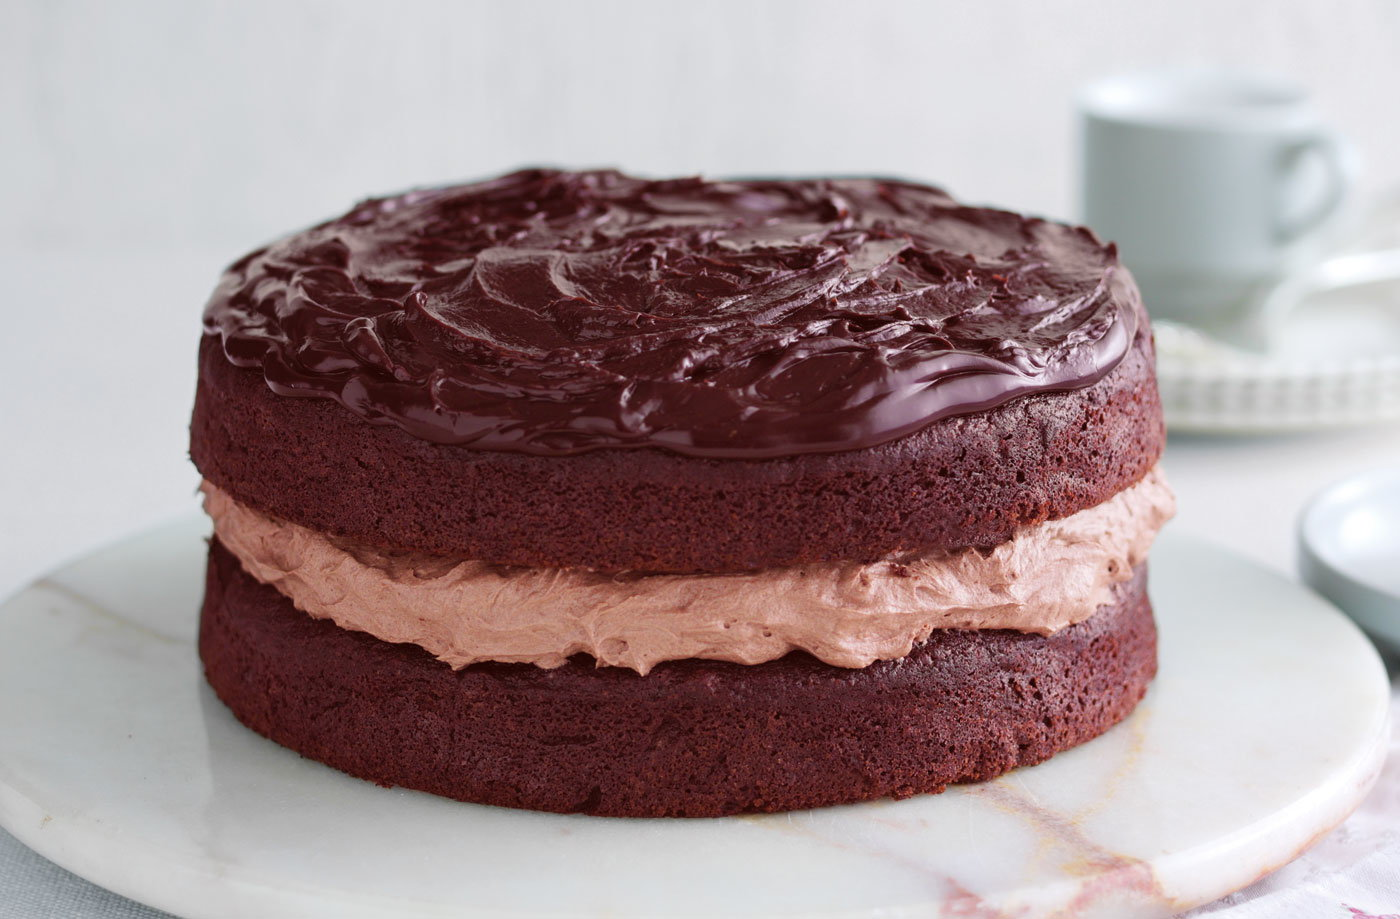 Tesco Chocolate Fudge Cake